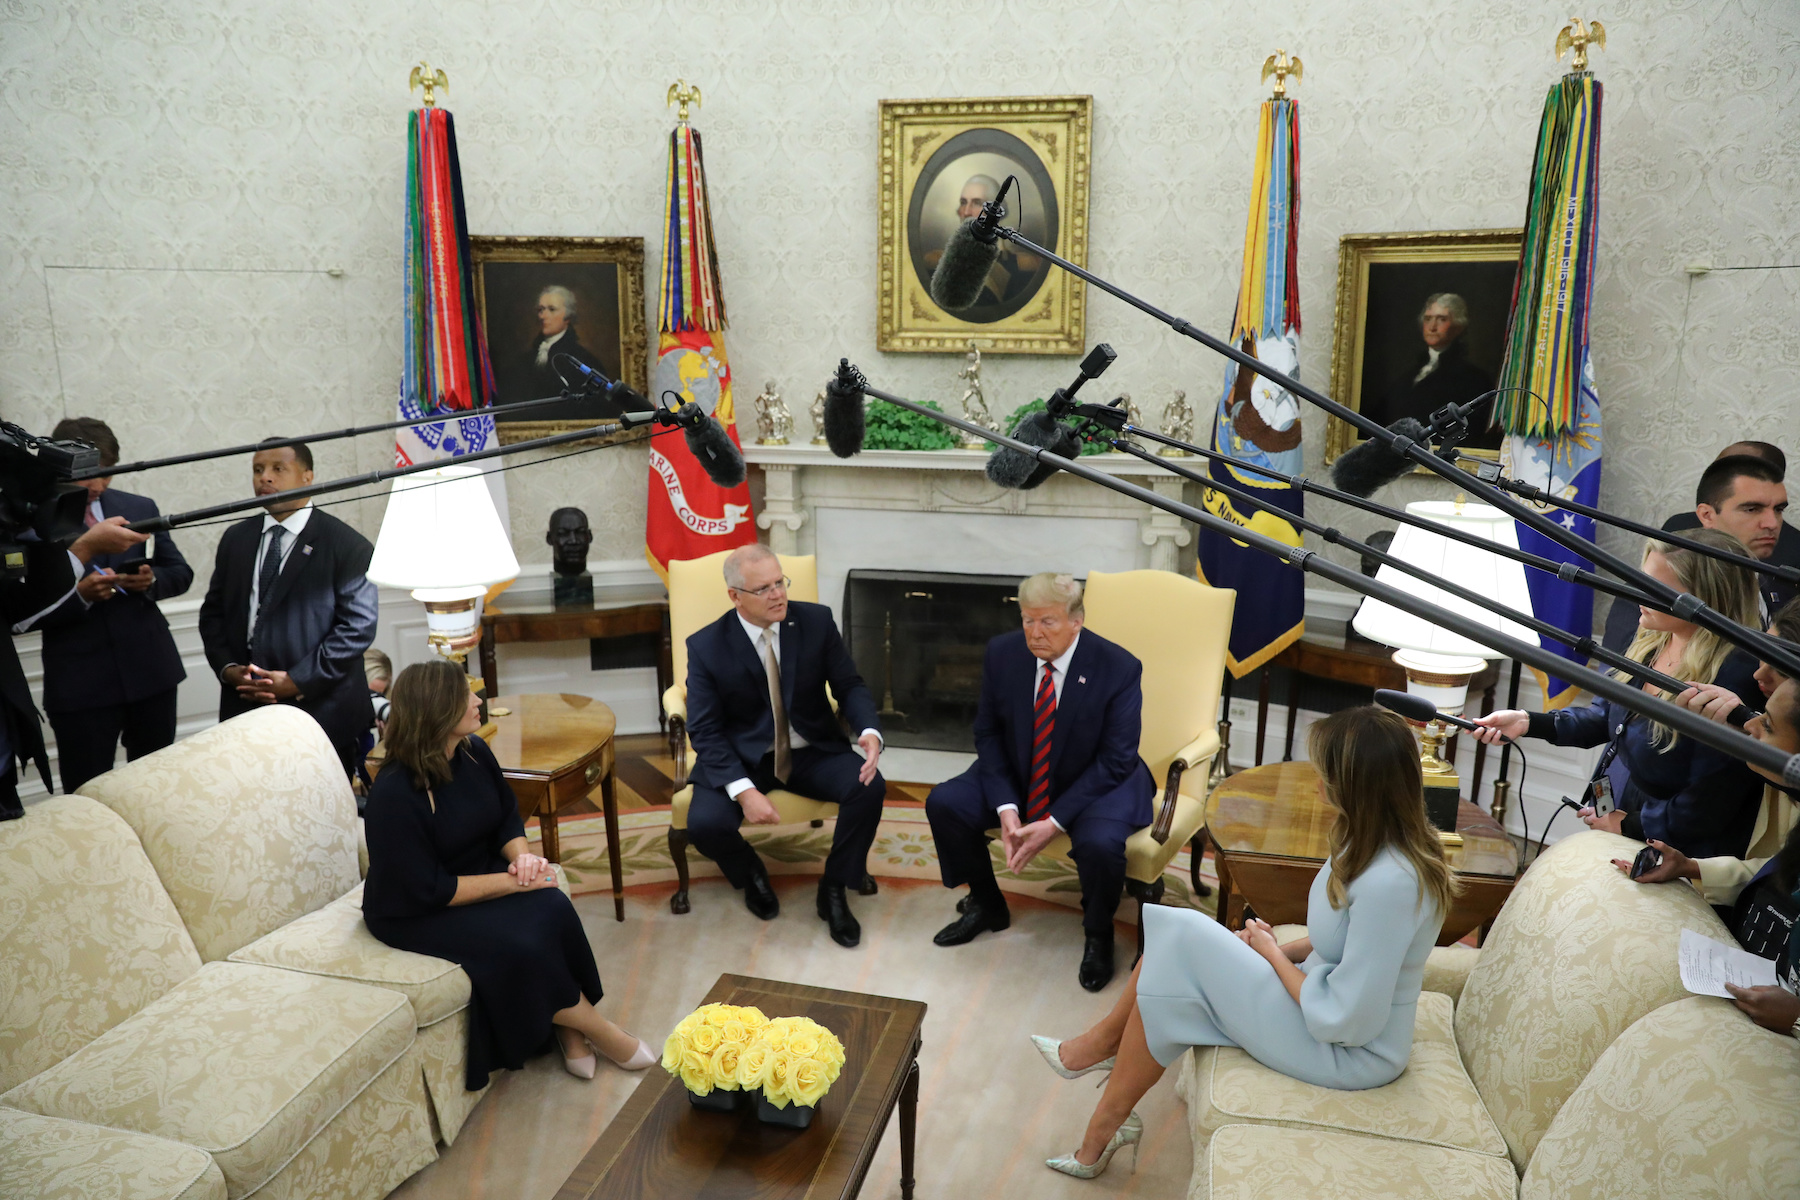 U.S. President Trump speaks to reporters while meeting with Australia's Prime Minister Morrison at White House in Washington